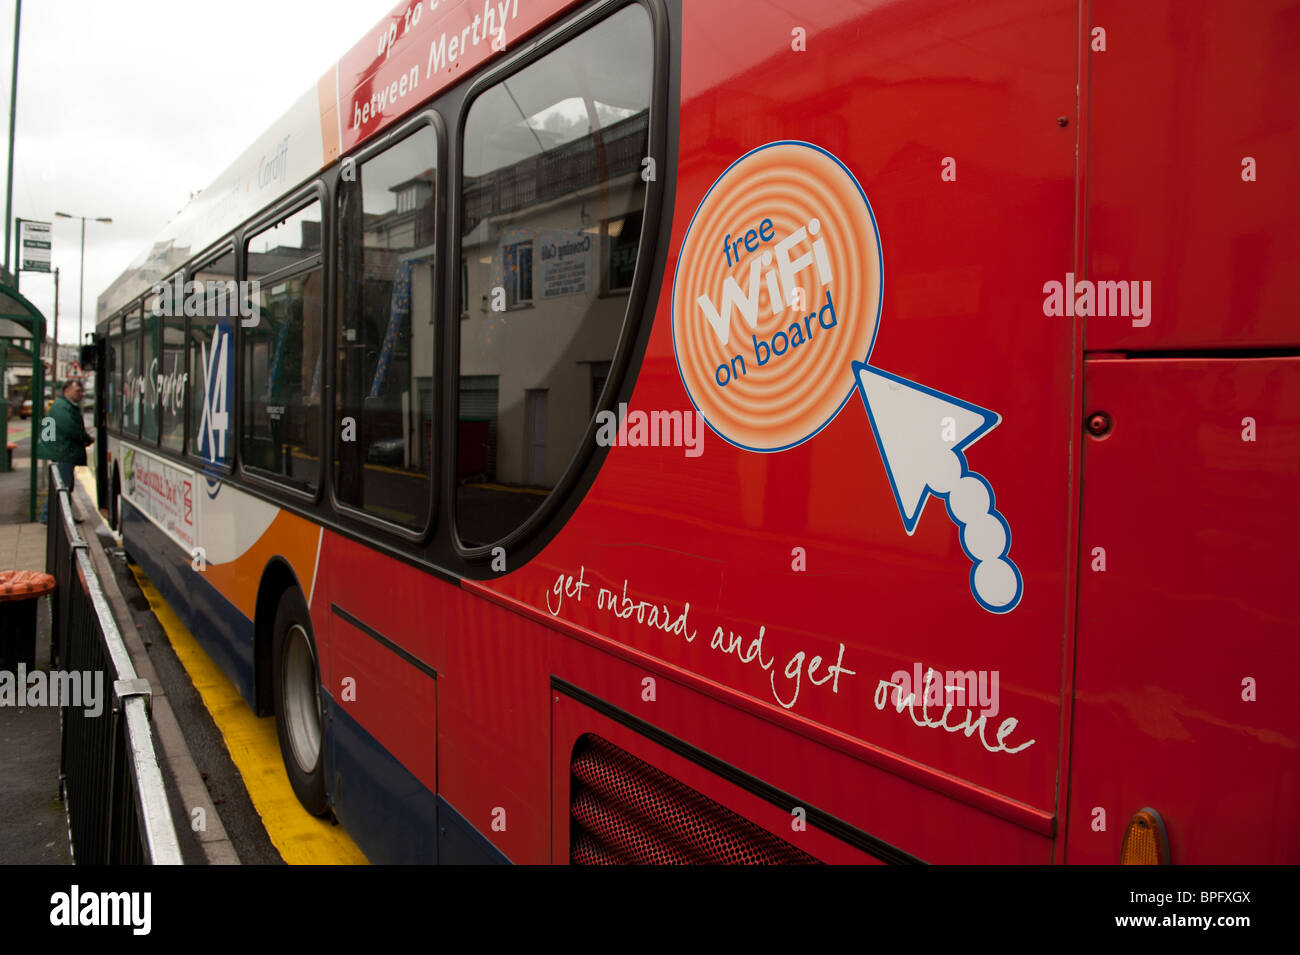 us advertising free on-board wi-fi, Ebbw Vale, South Wales, UK - Stock Image